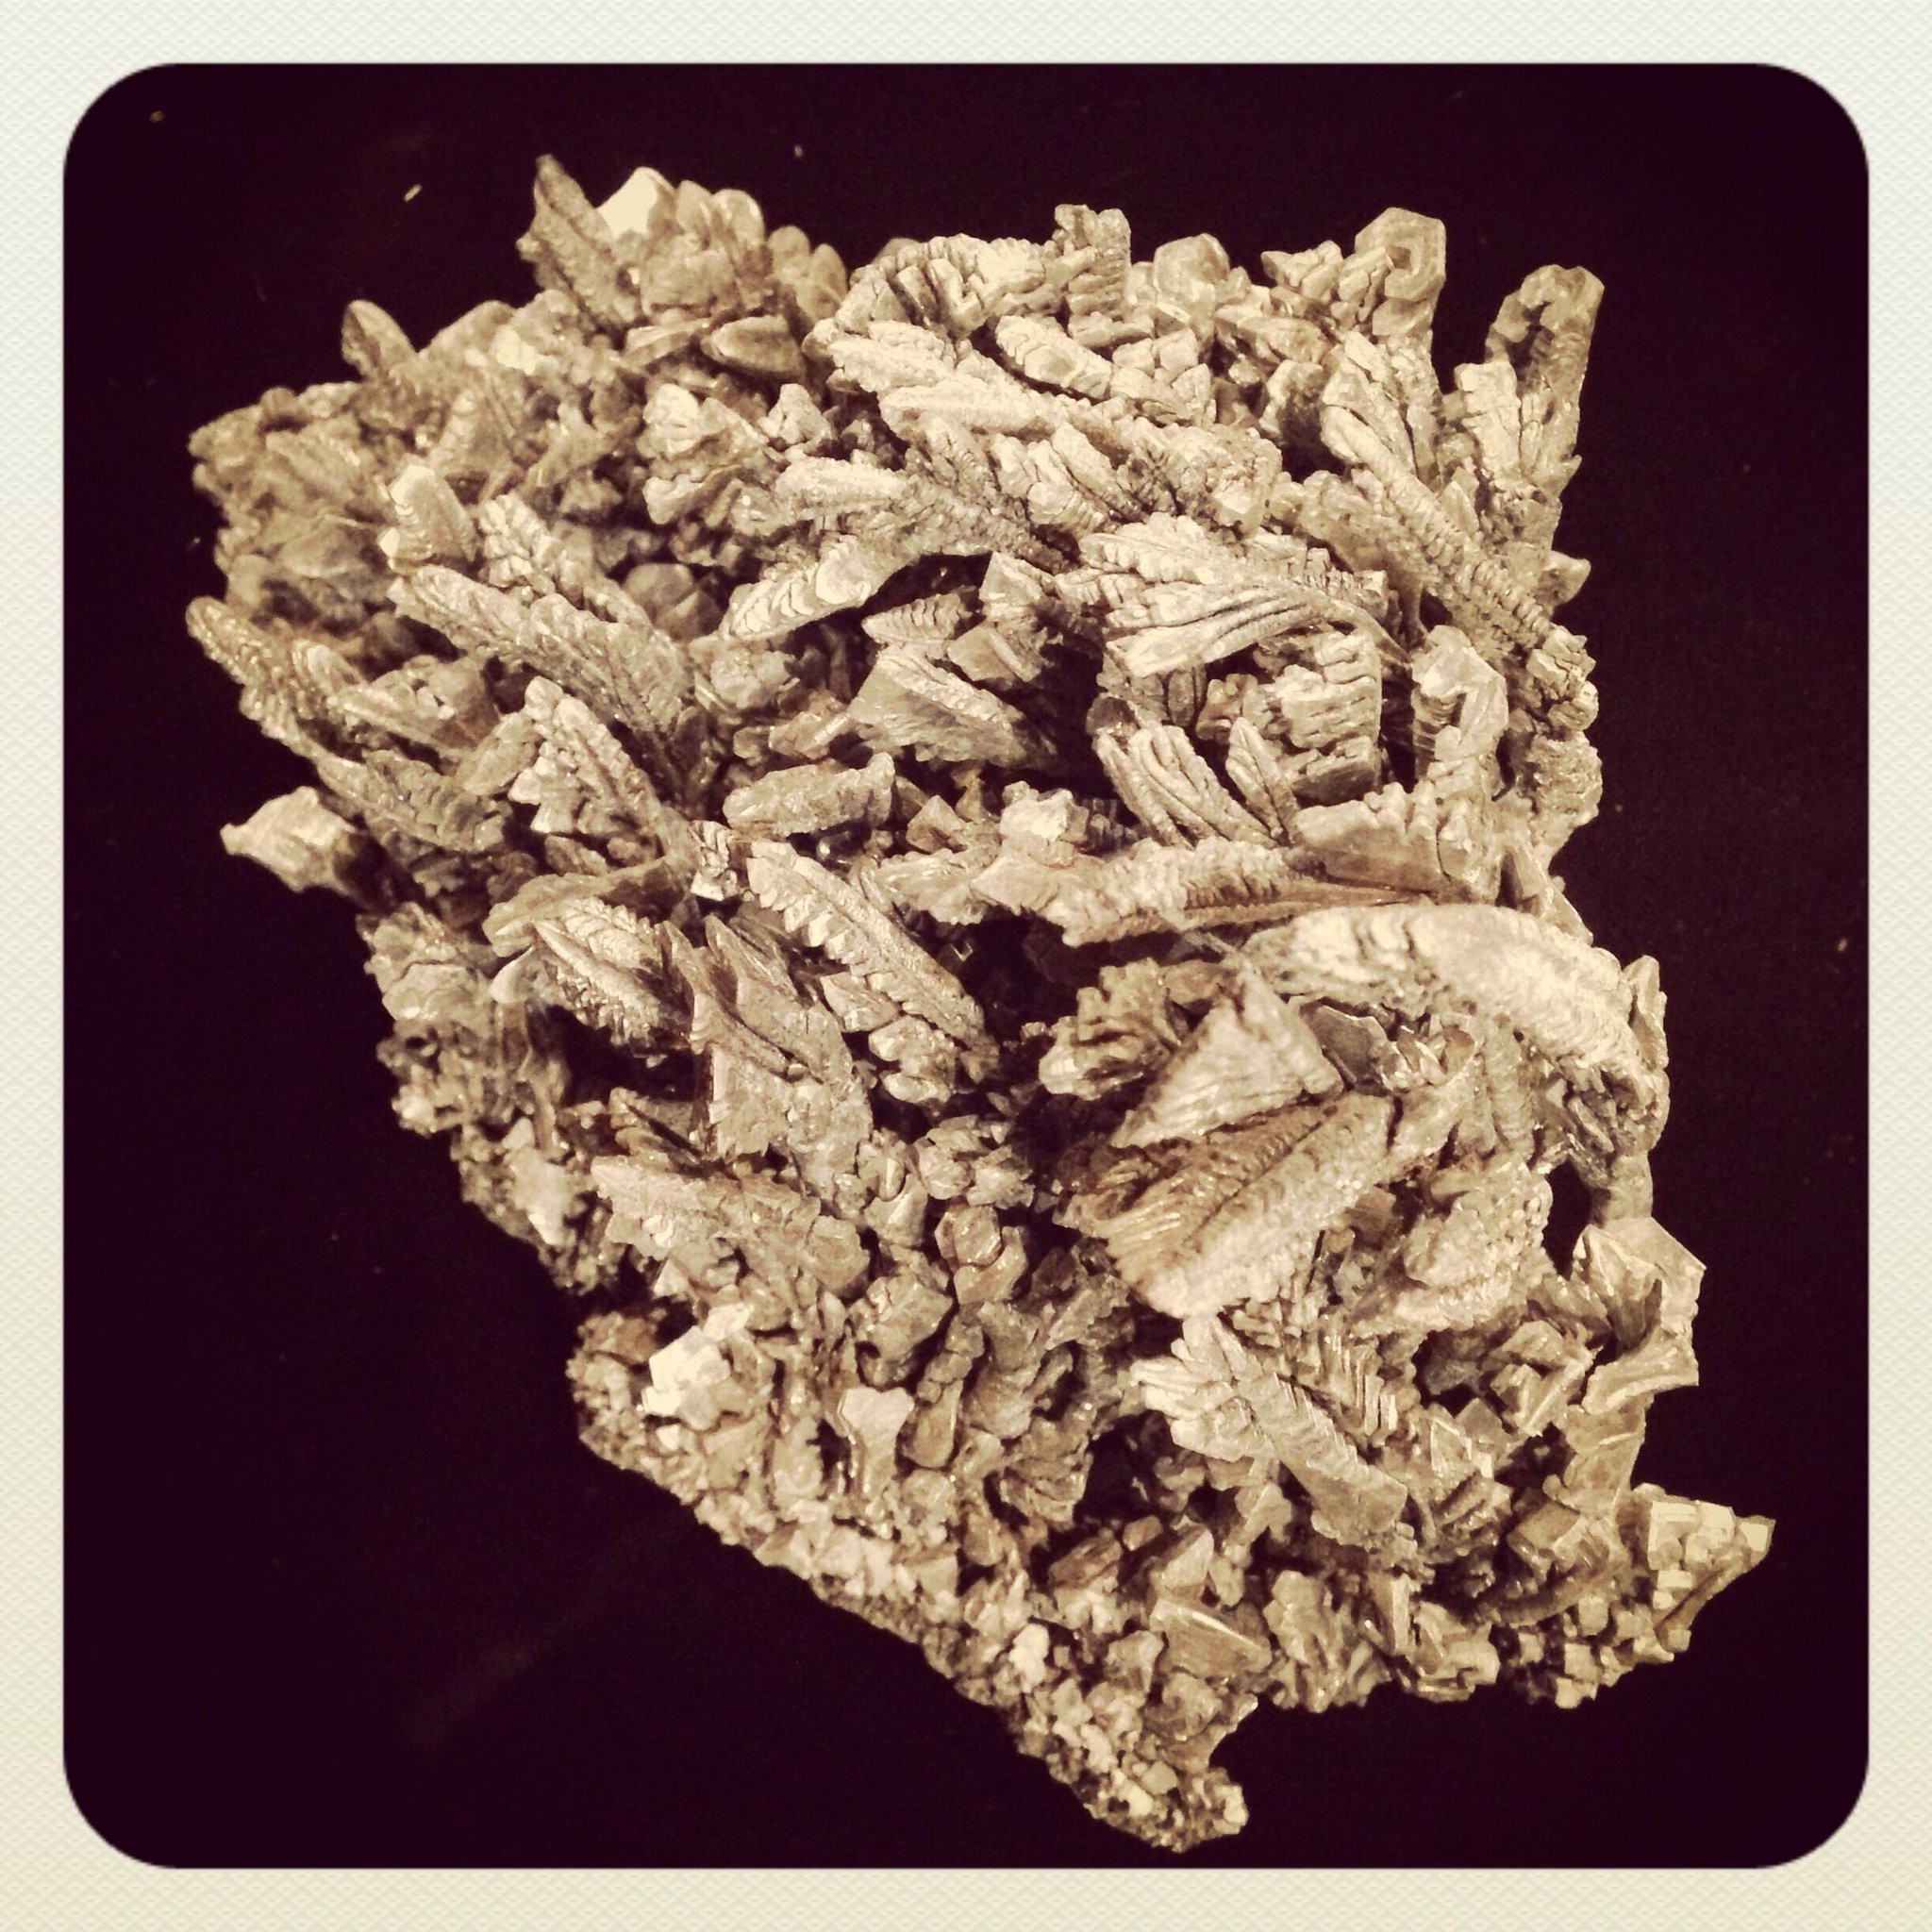 Magnesium formation. http://t.co/wc6tEzeaoS